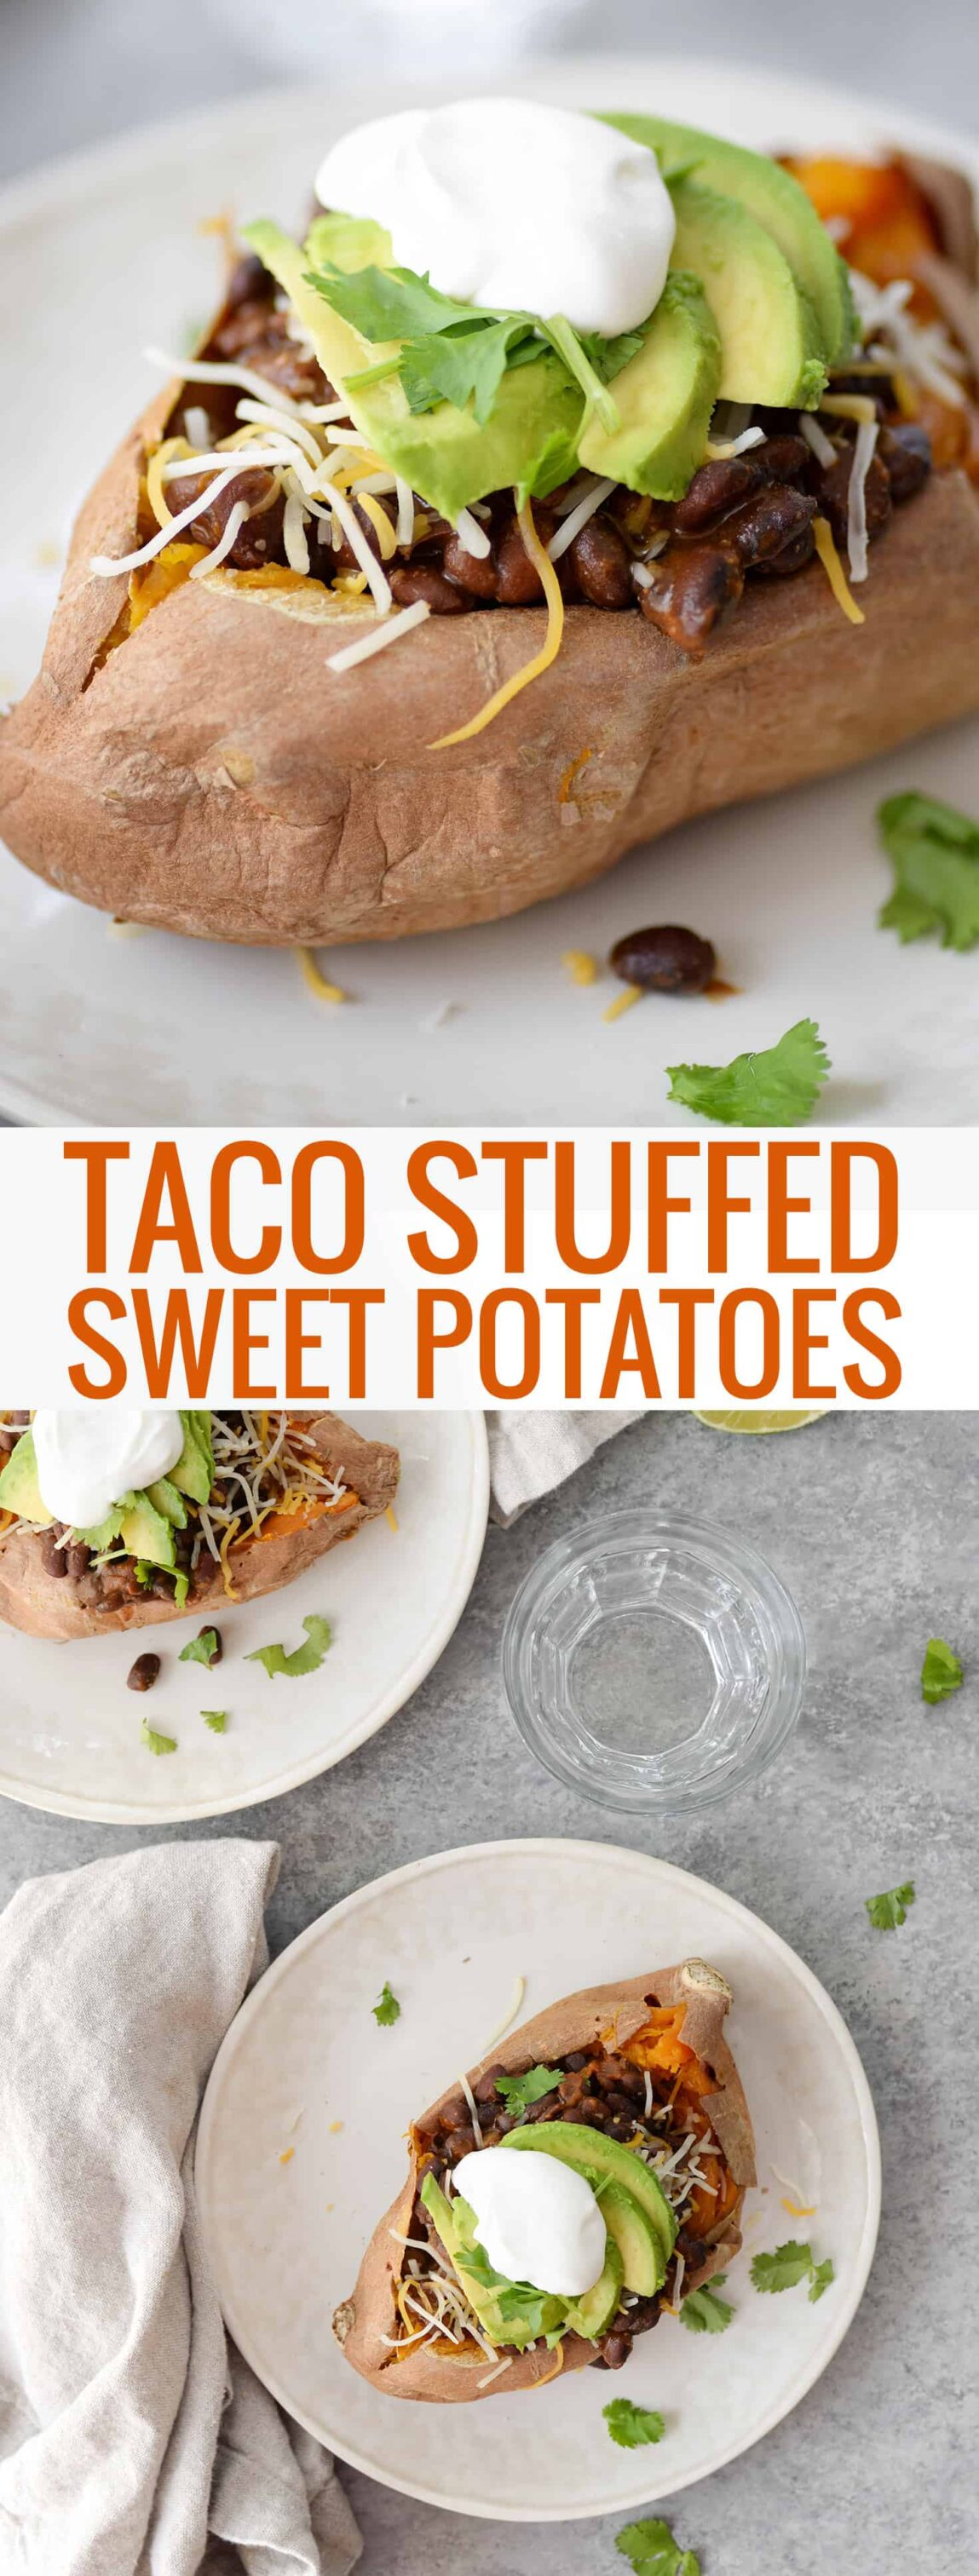 Taco Stuffed Sweet Potatoes! If you are looking for a quick and healthy vegetarian dinner, this is it. Sweet potatoes stuffed with a spicy black bean filling, cheese, avocado, cilantro and your favorite toppings. Gluten-free | www.delishknowledge.com